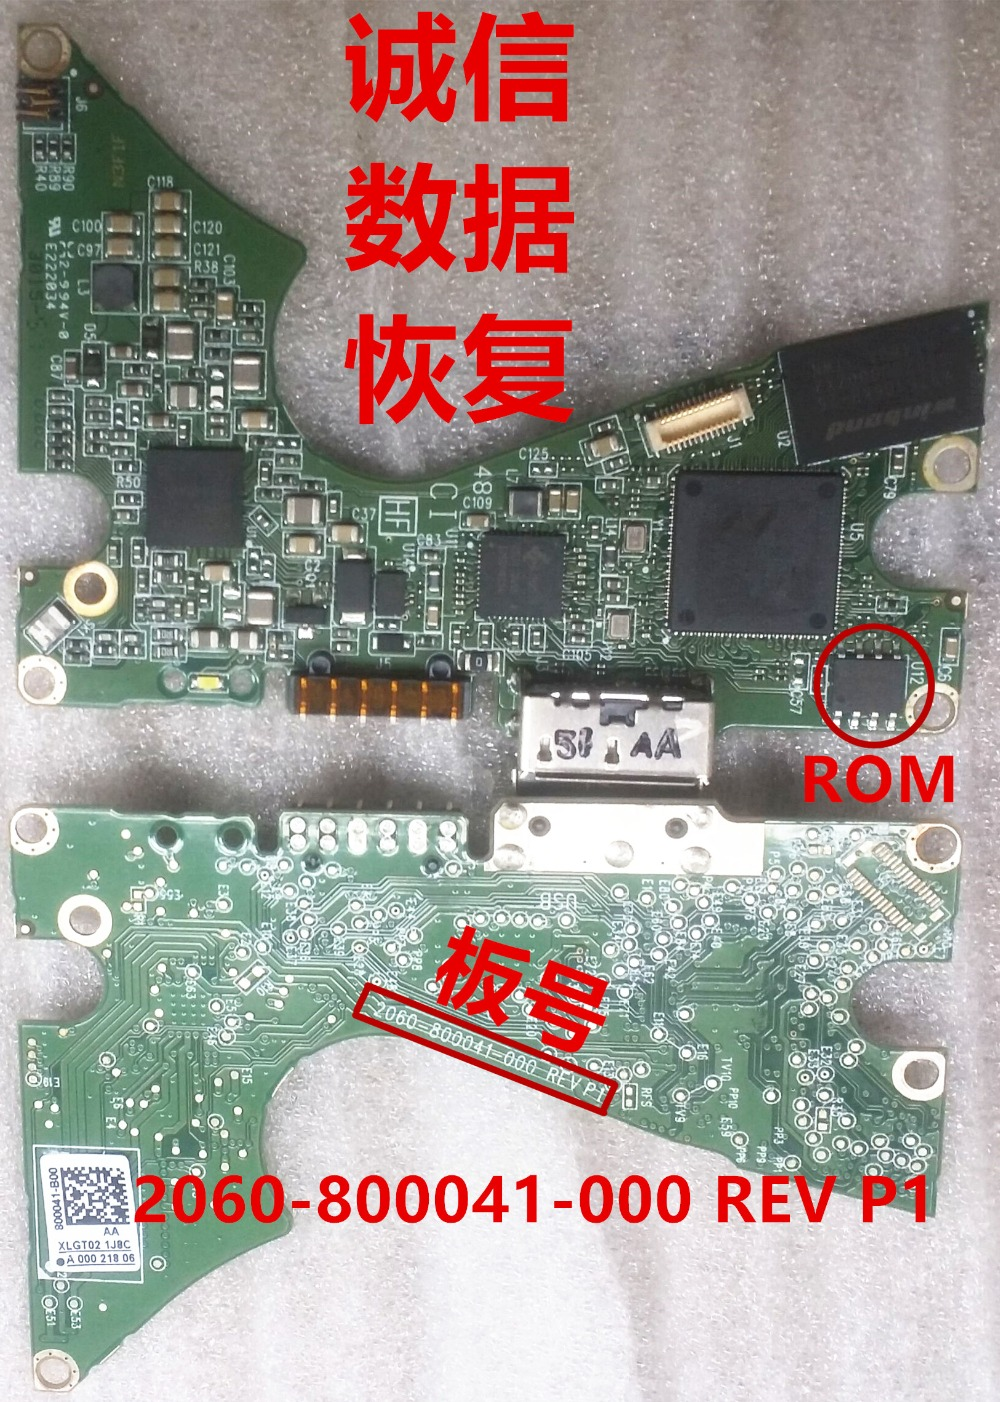 HDD PCB logic board printed circuit board 2060-800041-000 REV P1 for WD hard drive repair data recovery with USB 3.0 interface